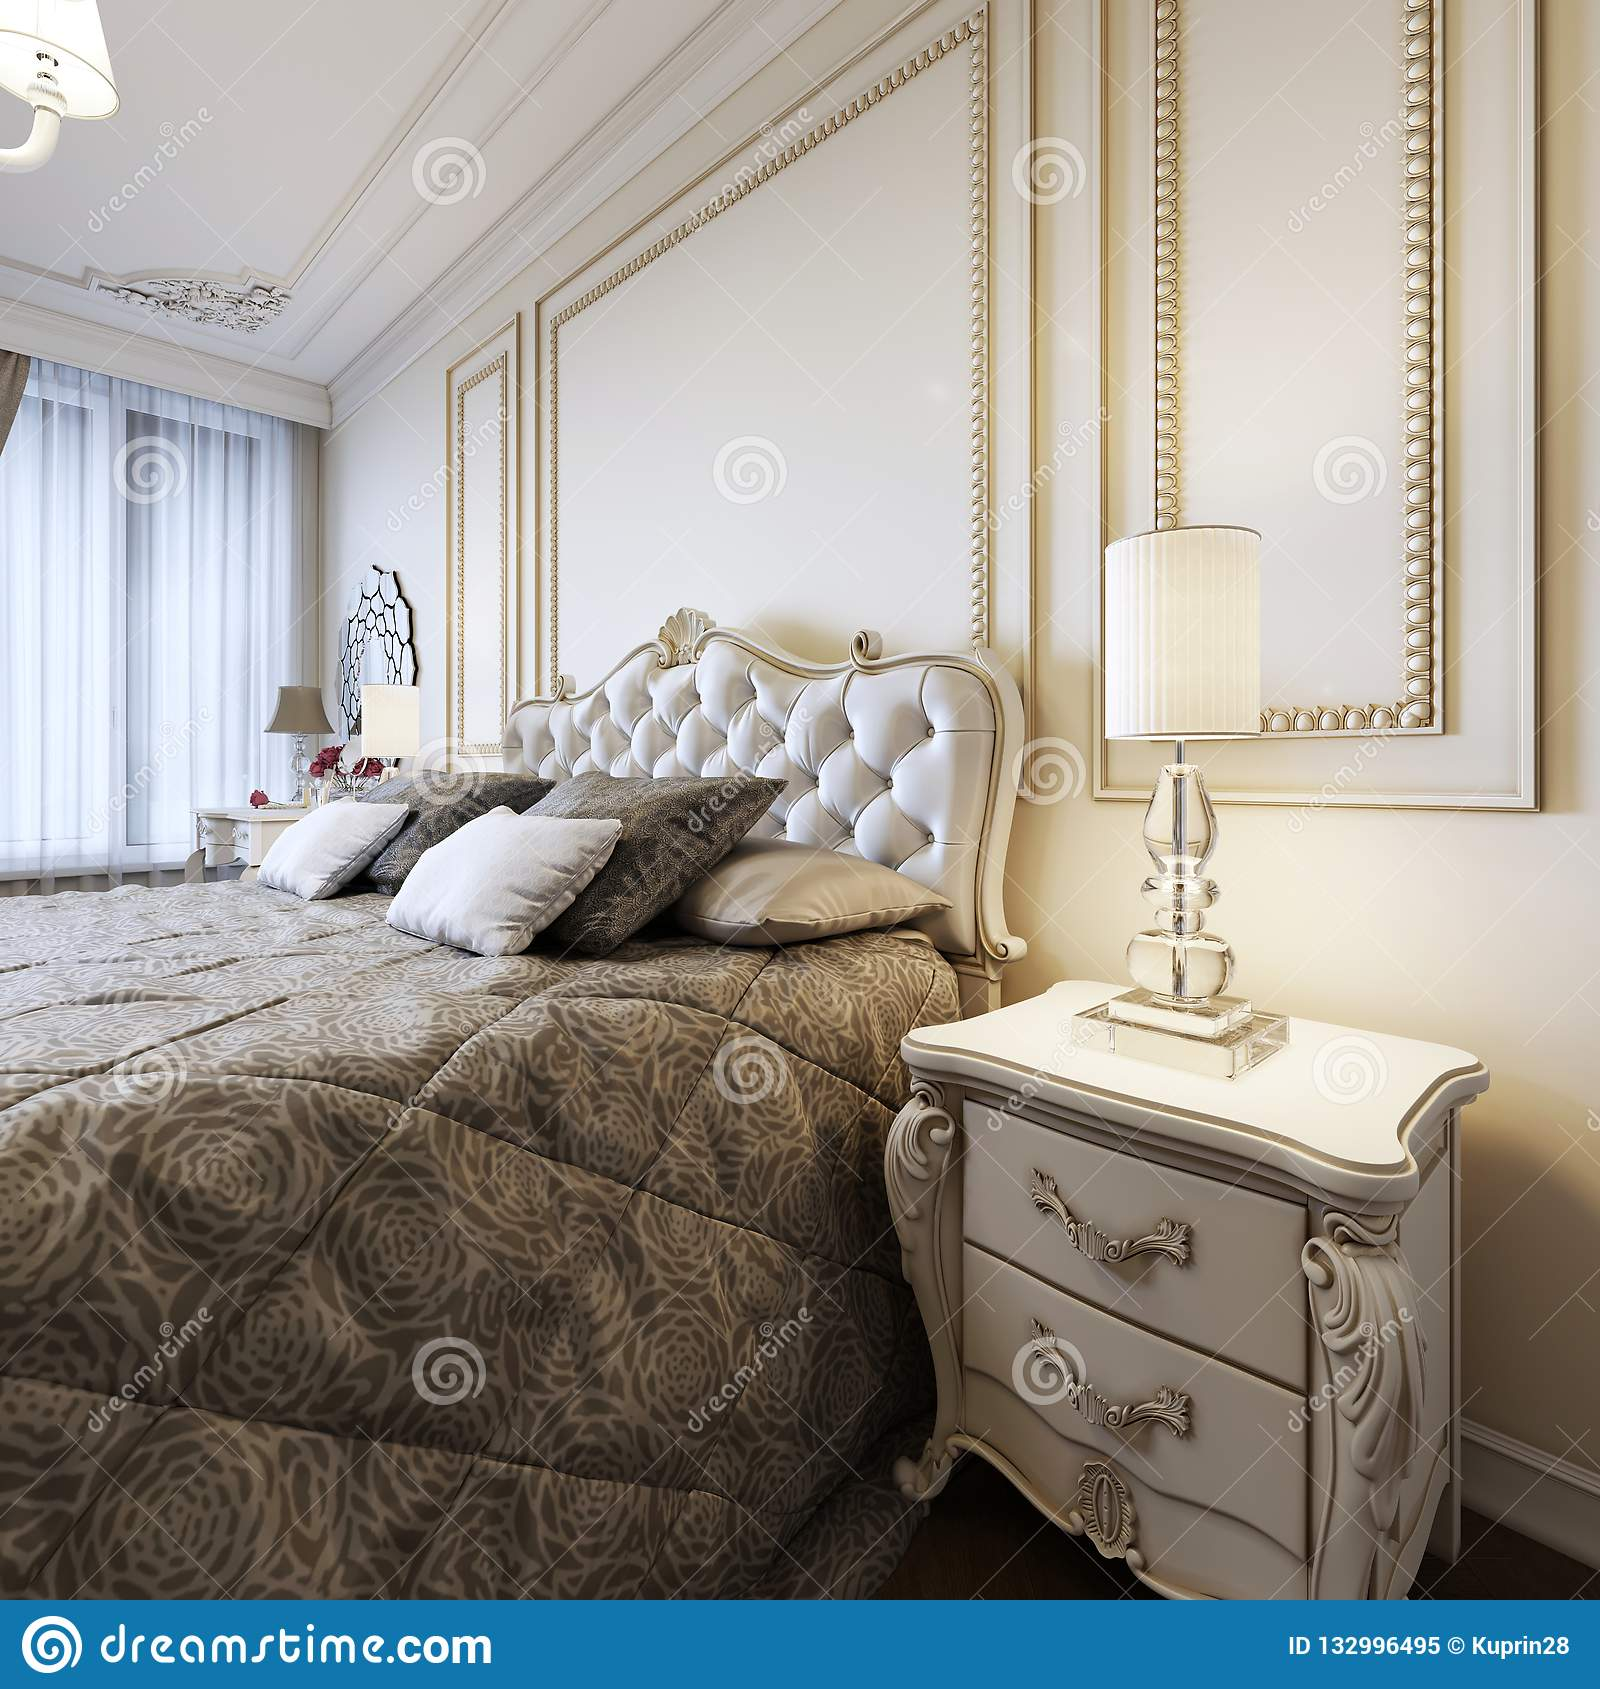 Classic Bed With Bedside Tables And Night Lamps In Art Deco Bedroom